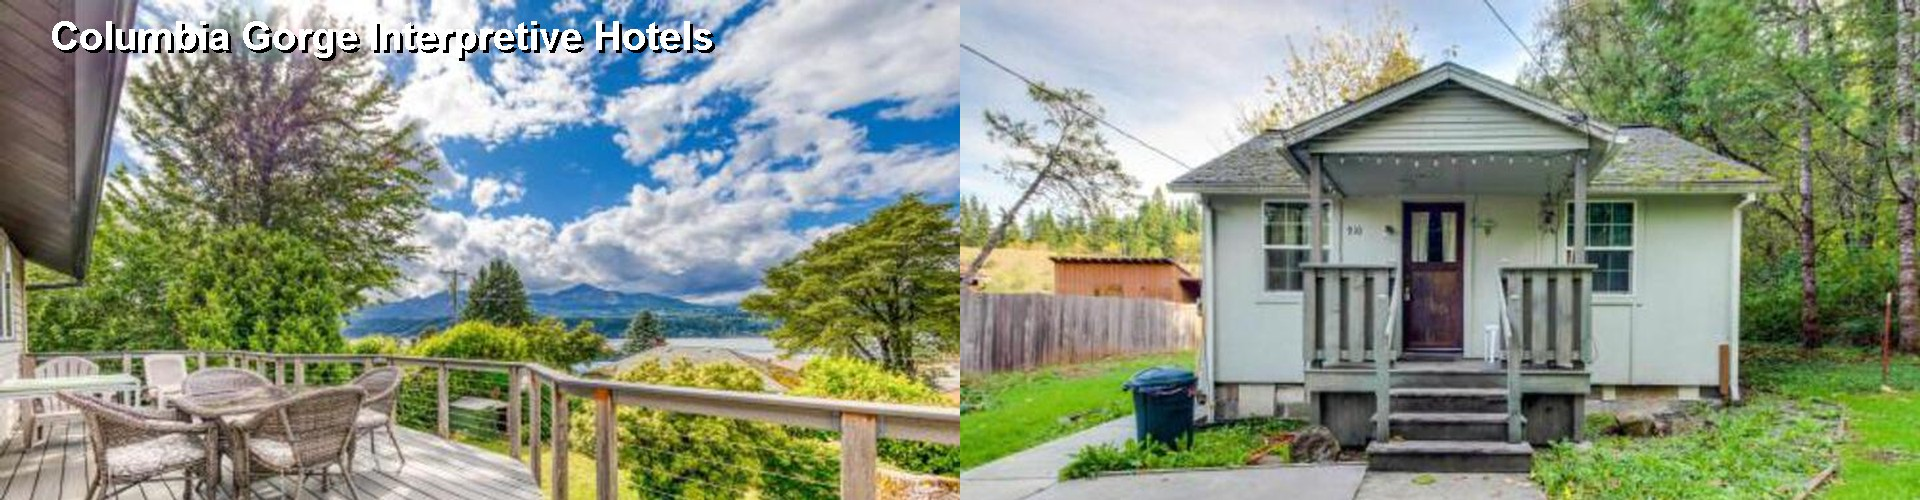 5 Best Hotels near Columbia Gorge Interpretive